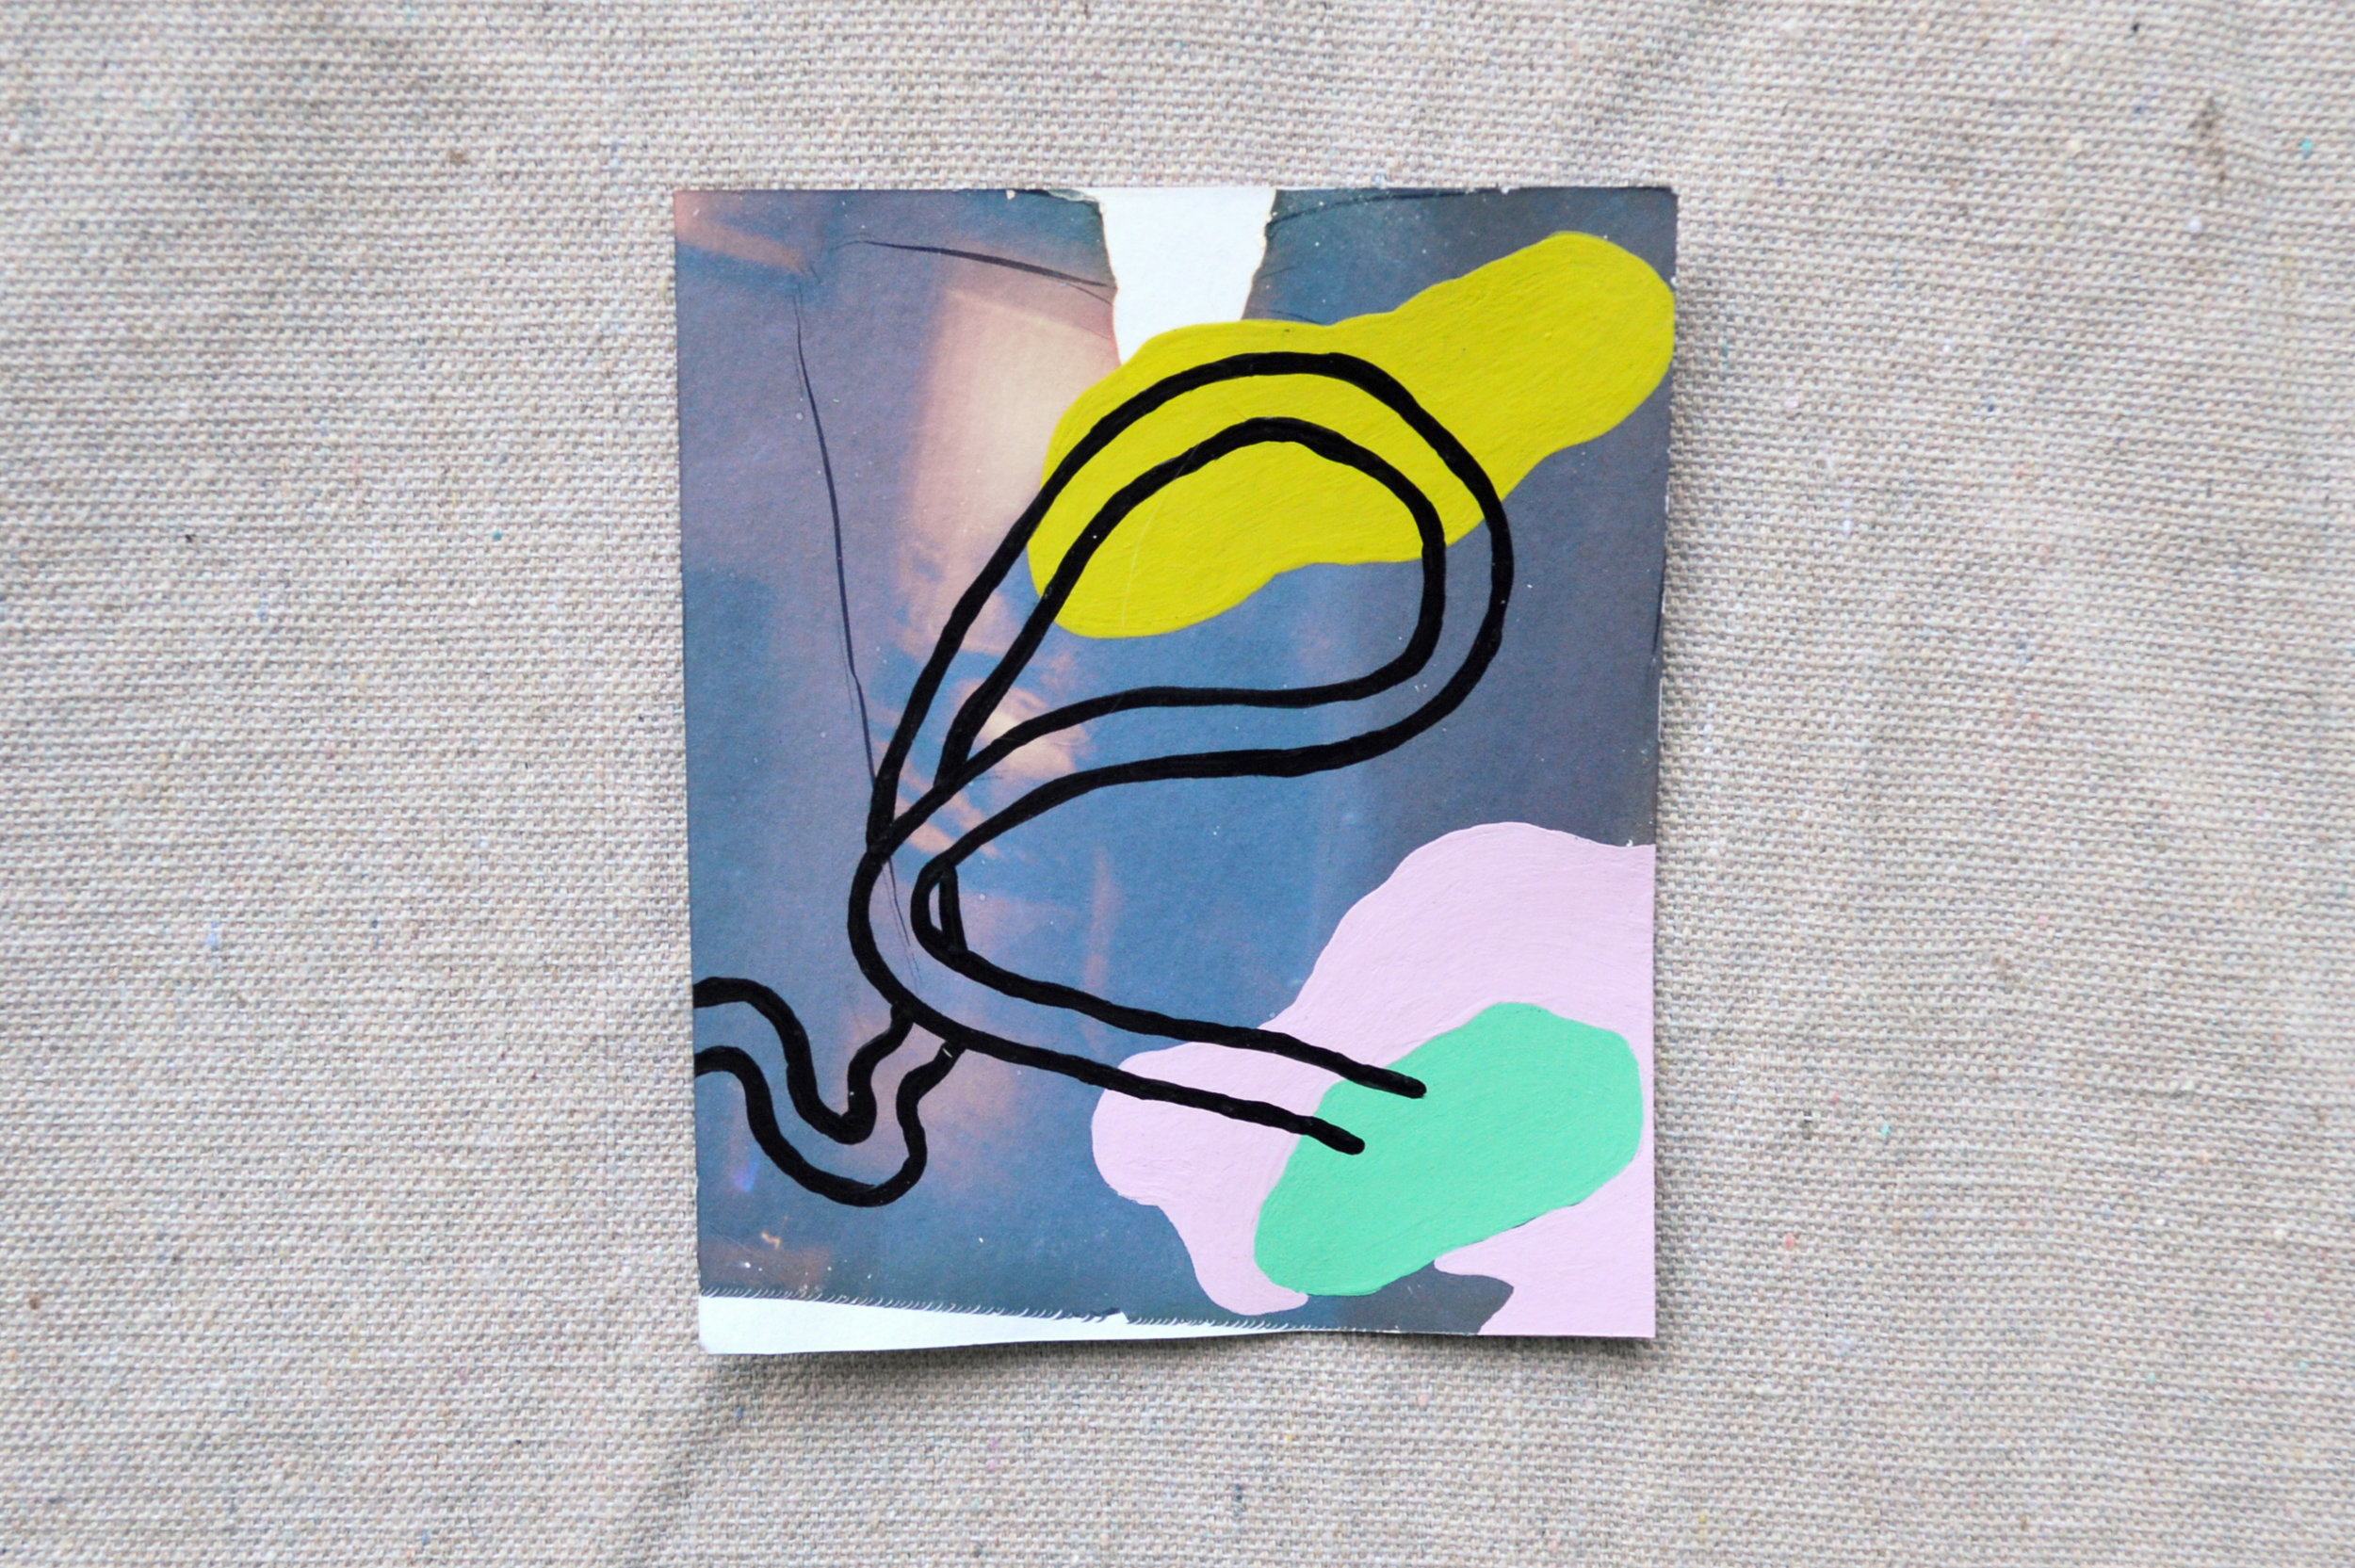 """The Aesthetics Of Being 26 And Maybe Drinking A Little Too Much (Home, At The Time)  Paint on polaroid emulsion on paper  4.5"""" x 4""""  2018"""